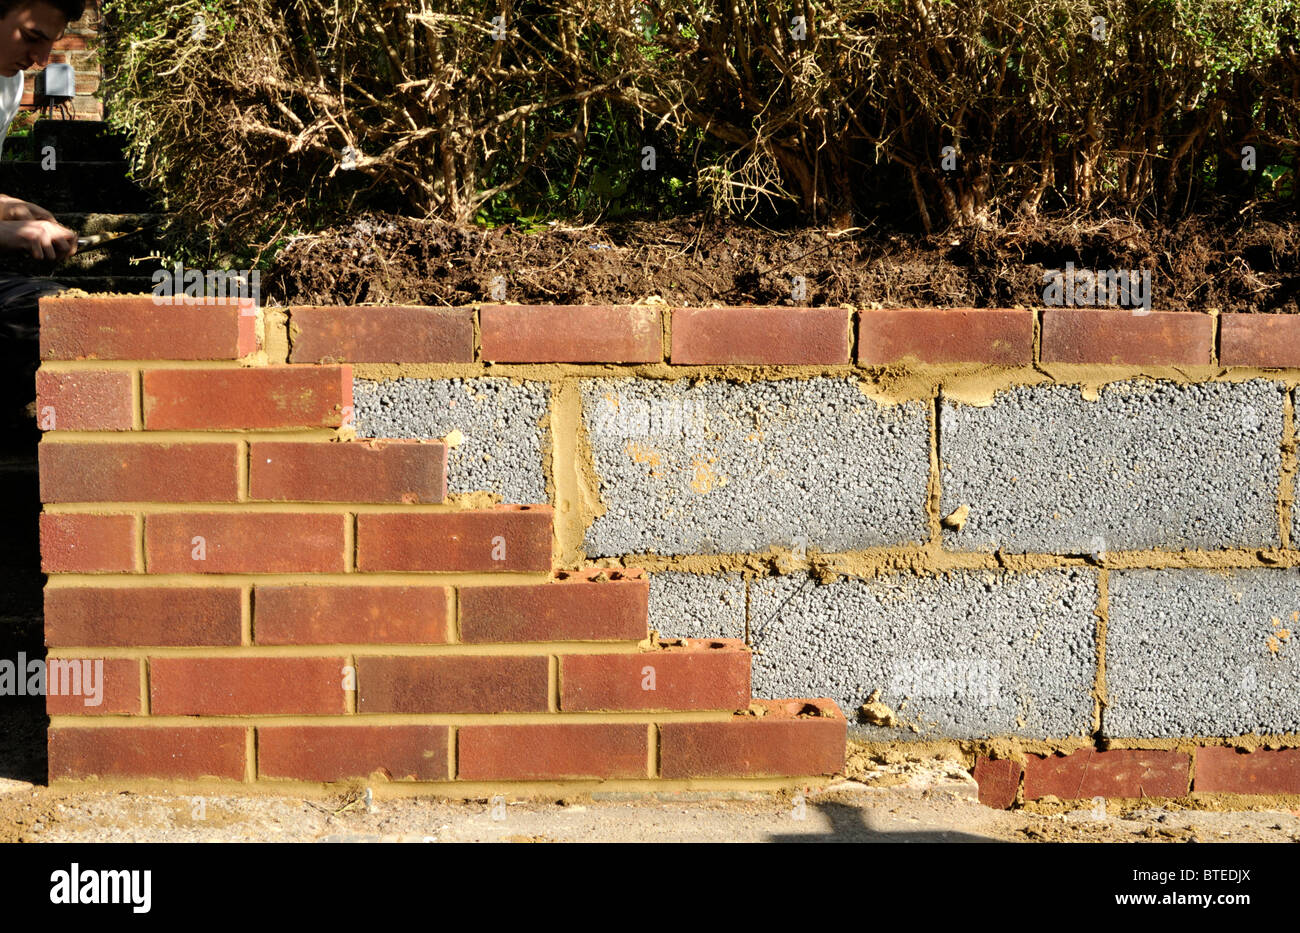 Charmant New Garden Wall With Inner Concrete Blocks And Outer Red Bricks. UK